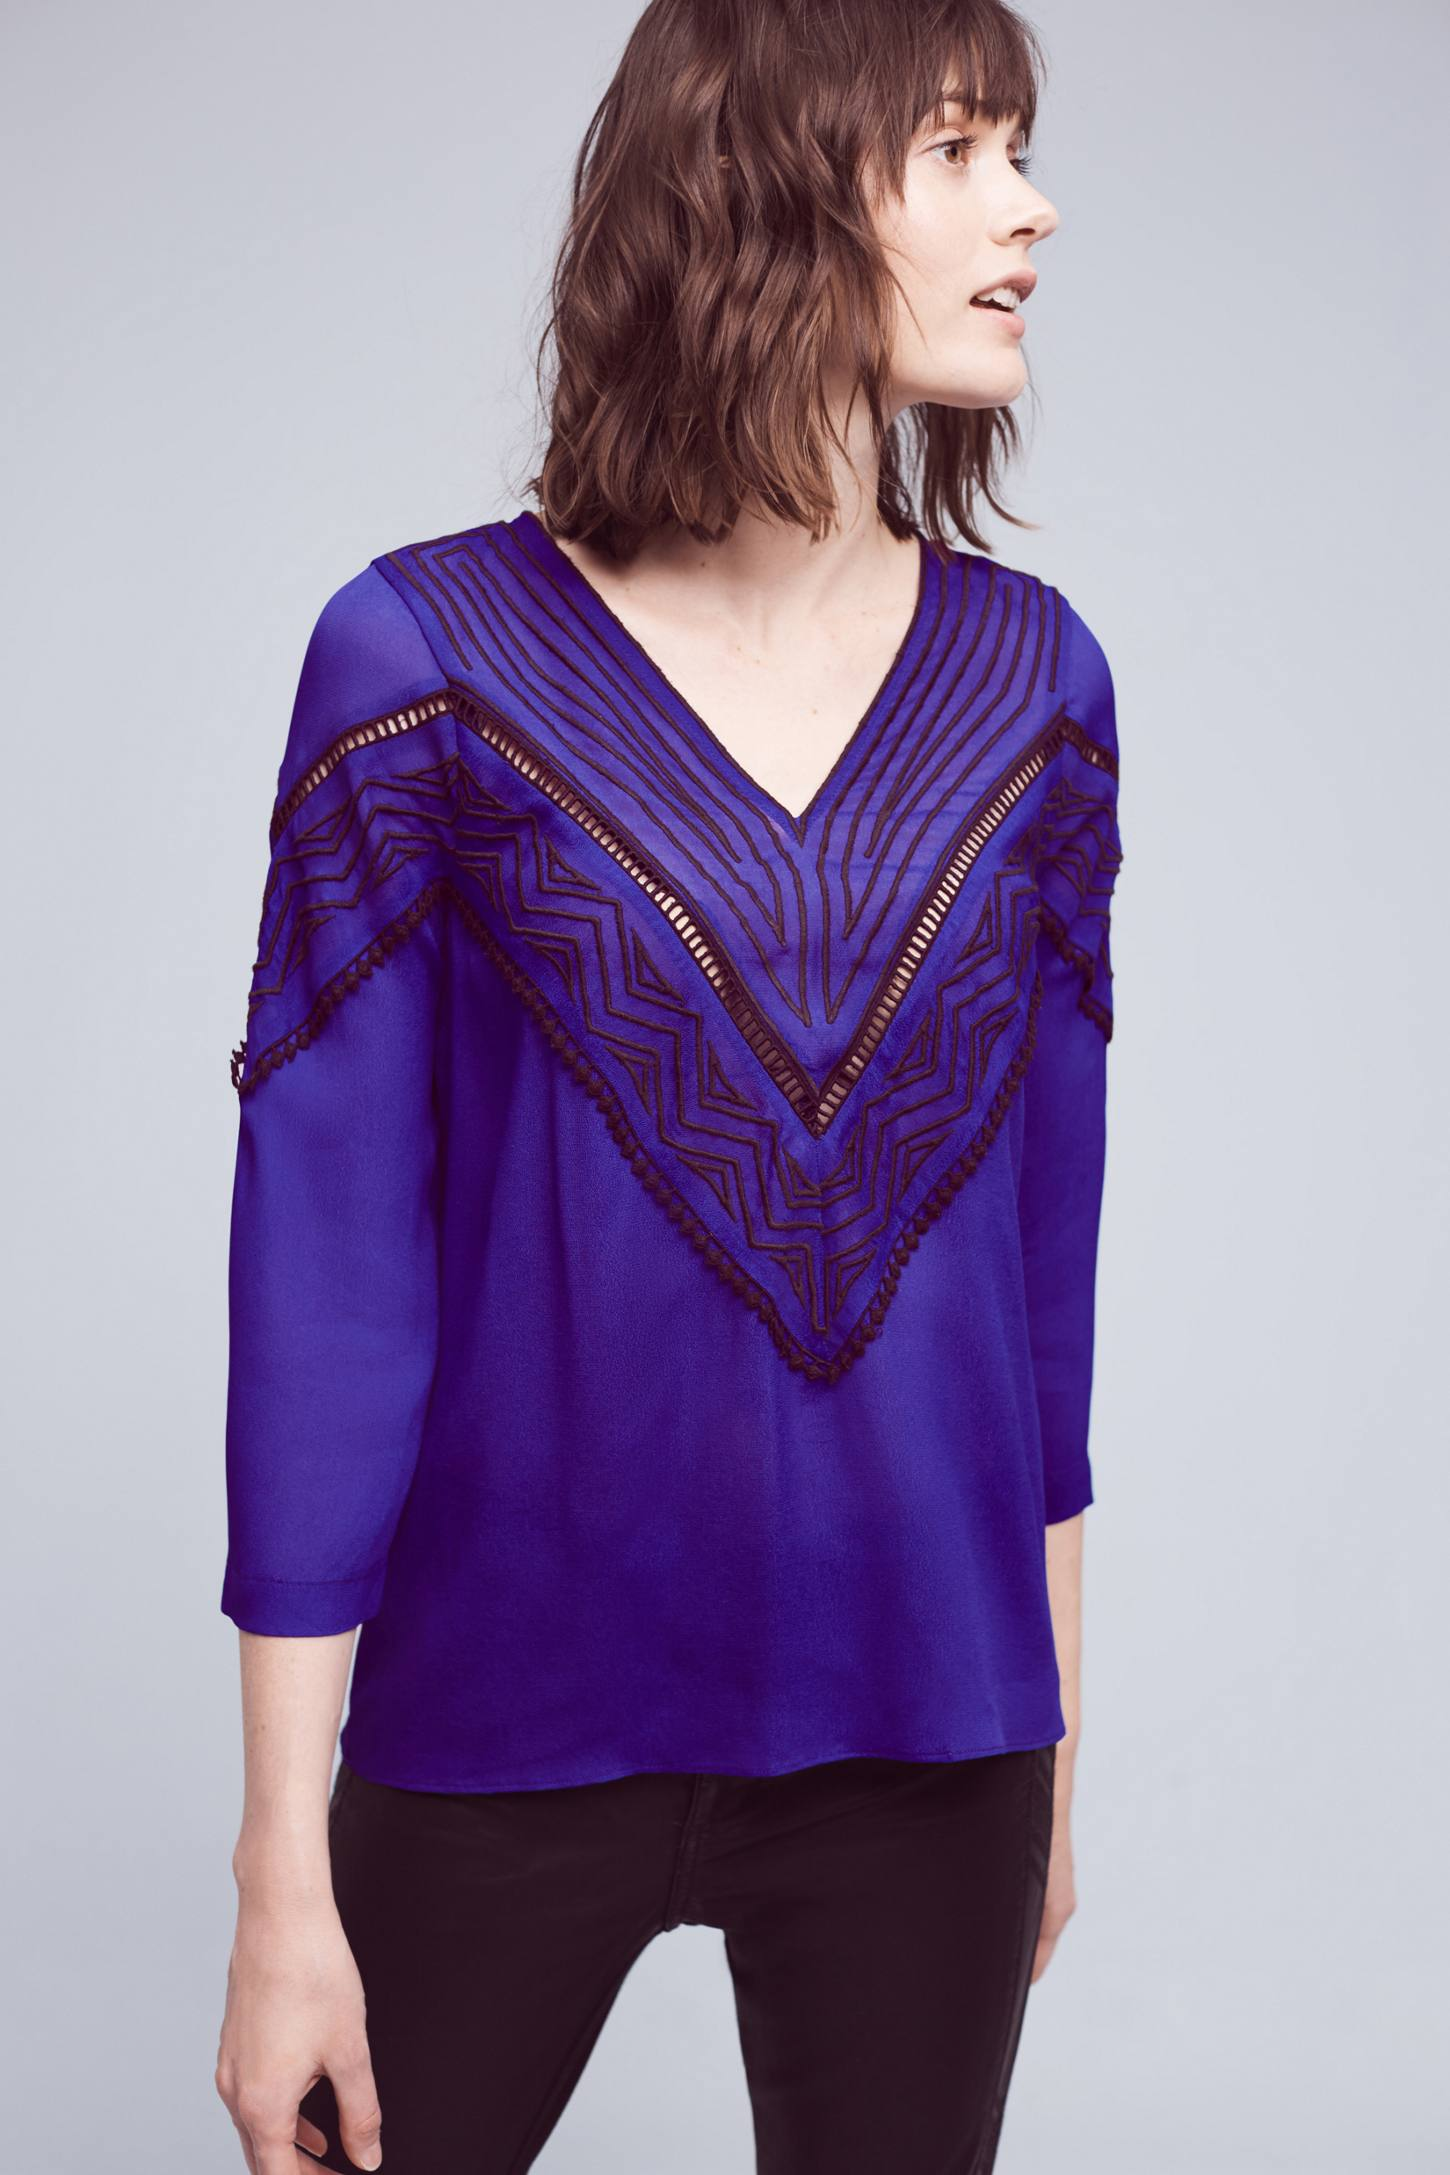 Slide View: 1: Stroke of Midnight Embroidered Blouse